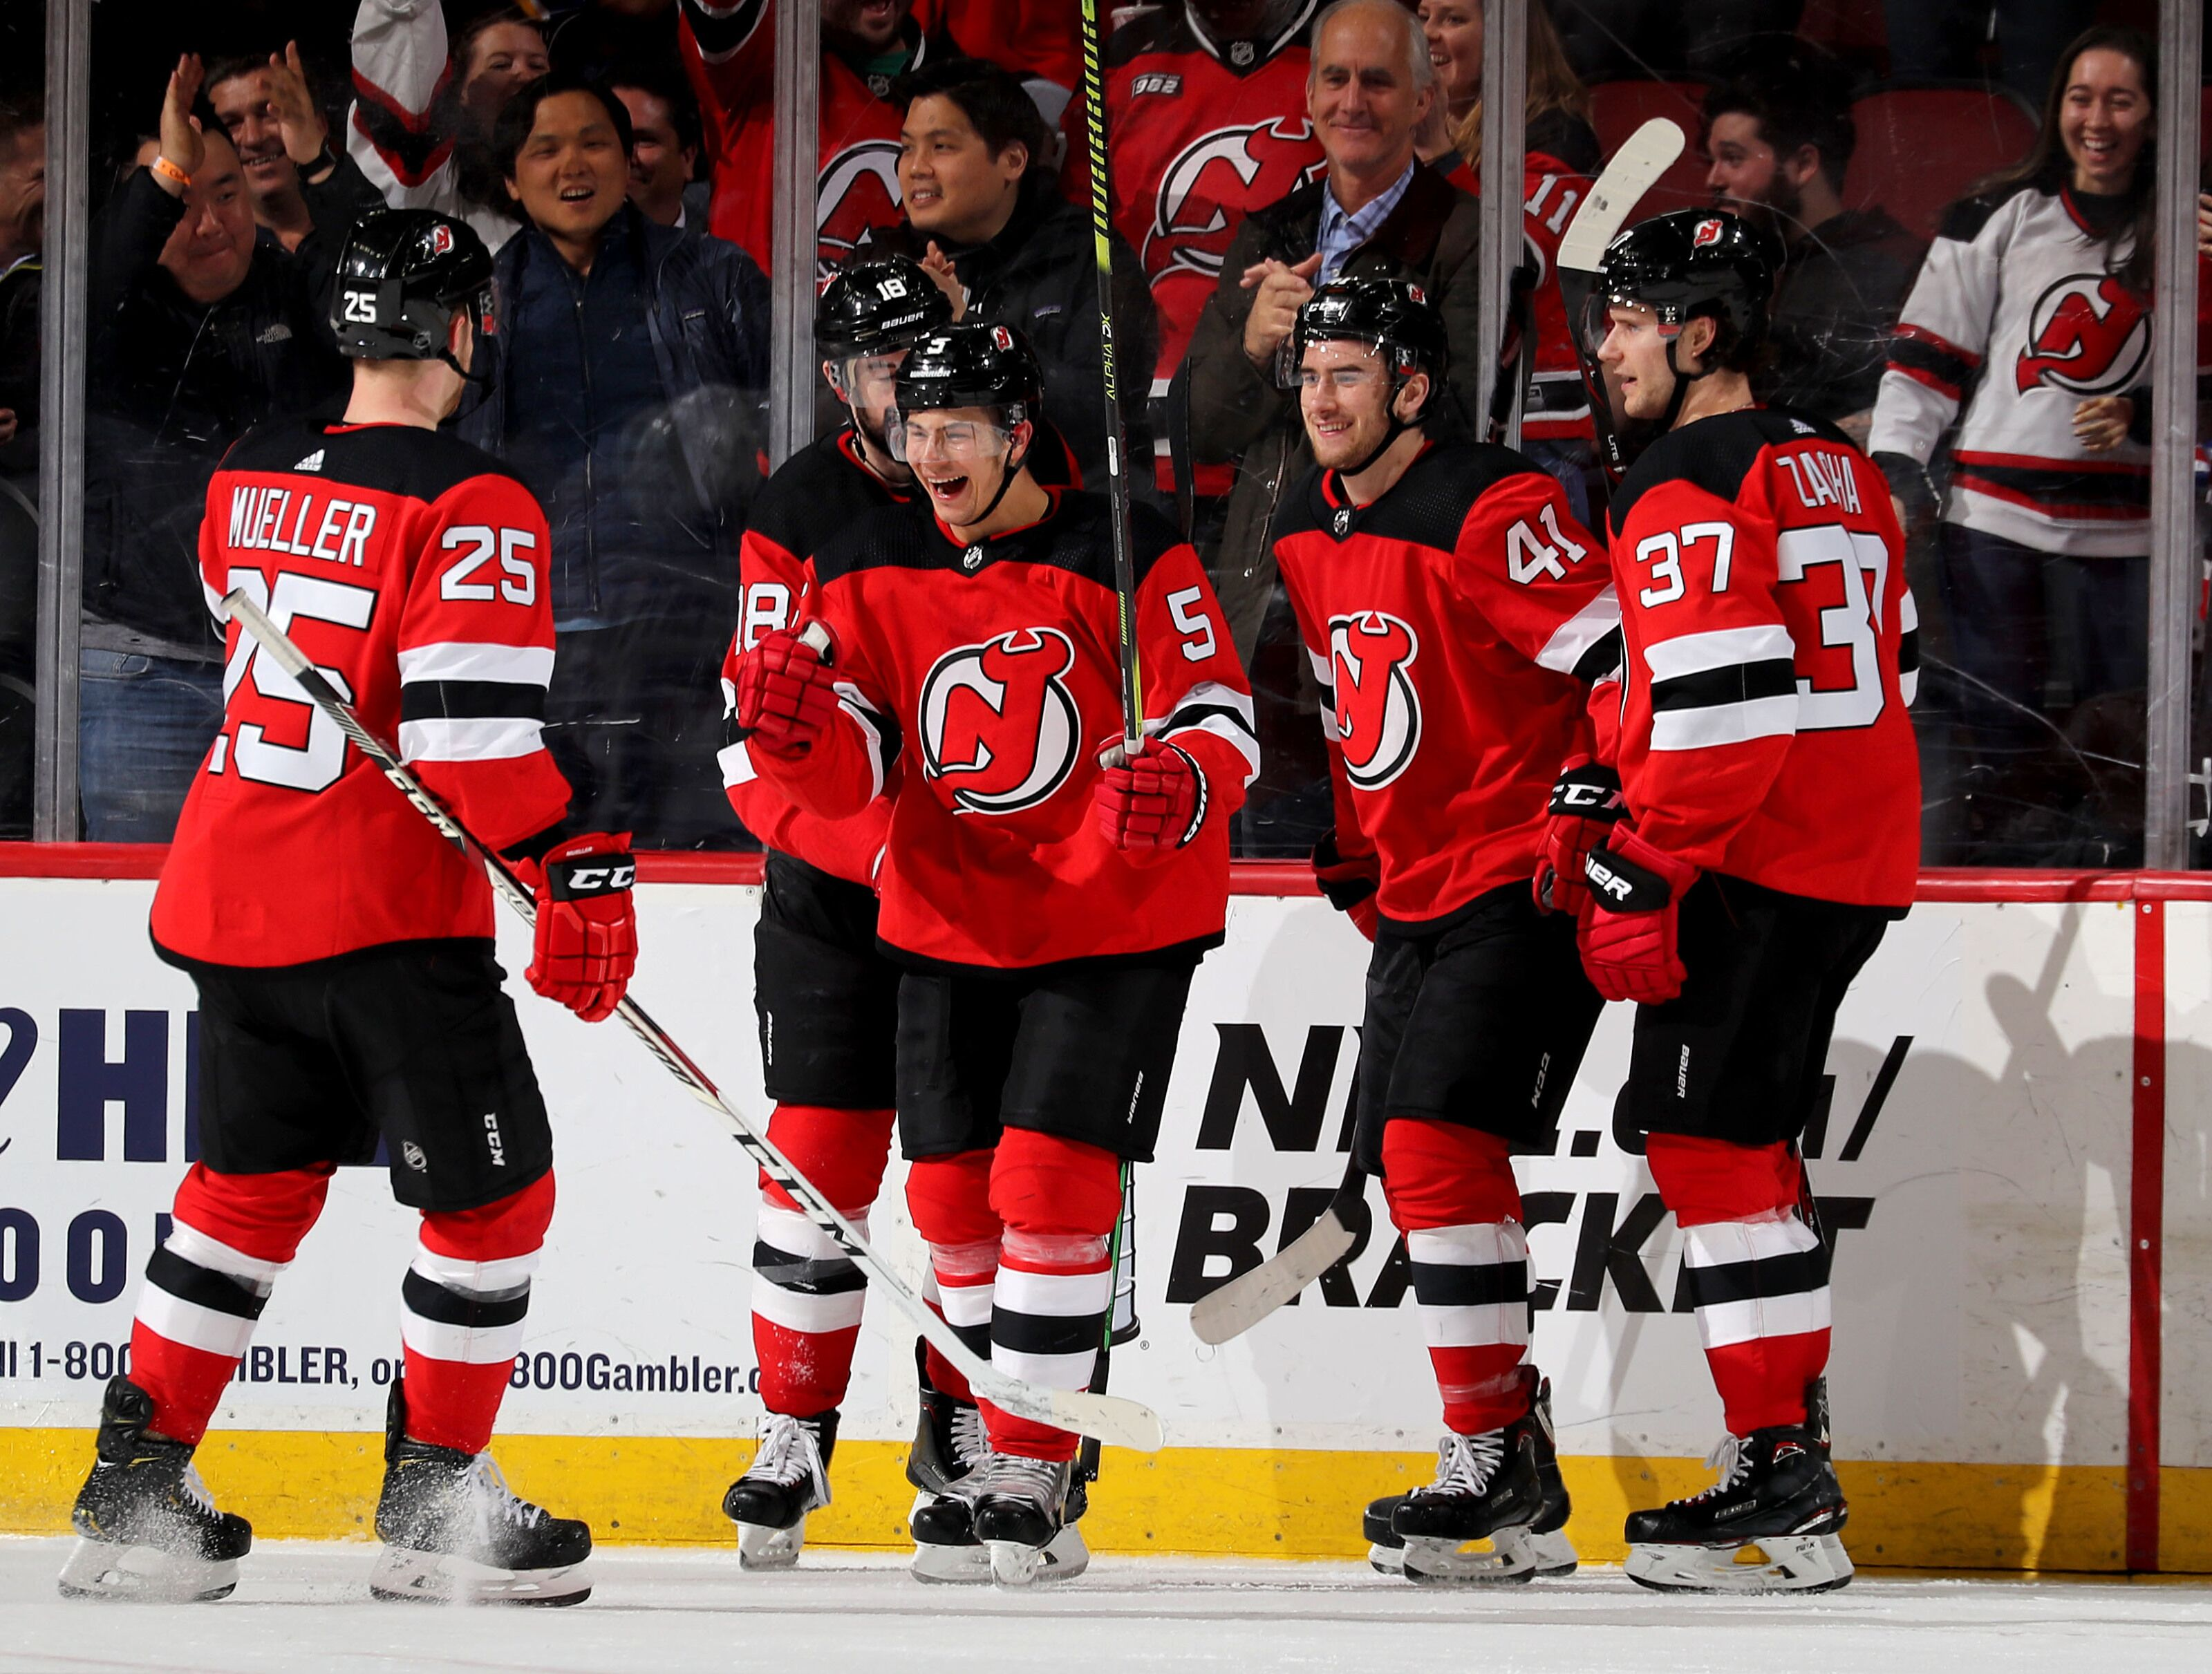 huge selection of 78e40 2b03c New Jersey Devils: Evaluating Futures of Pavel Zacha ...